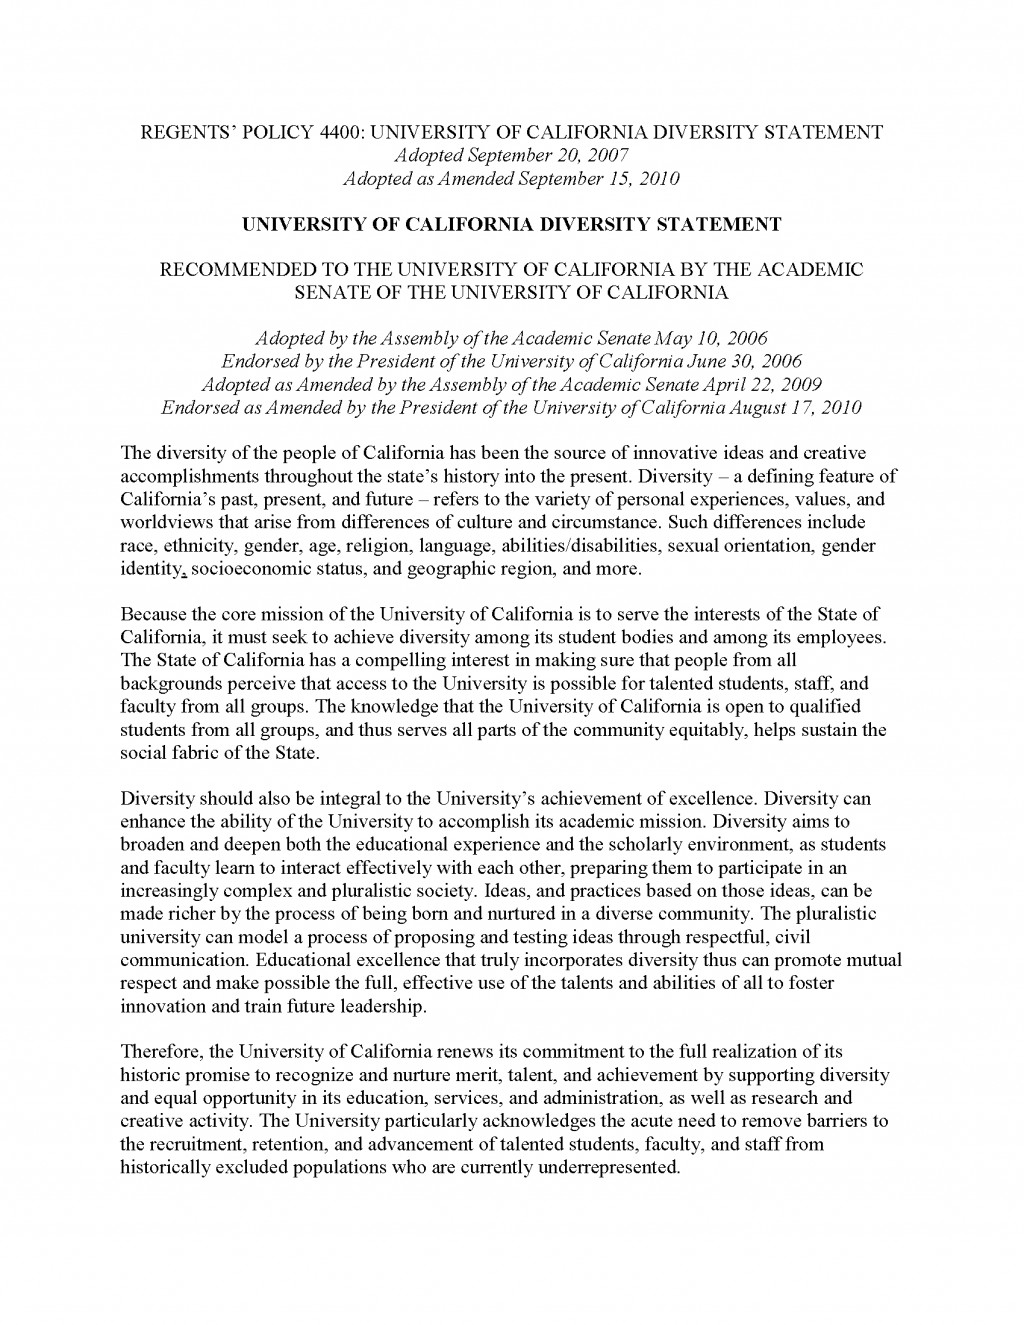 016 Regents Policy Essay On Diversity Breathtaking For College Admission Regional In India Indian Culture Large